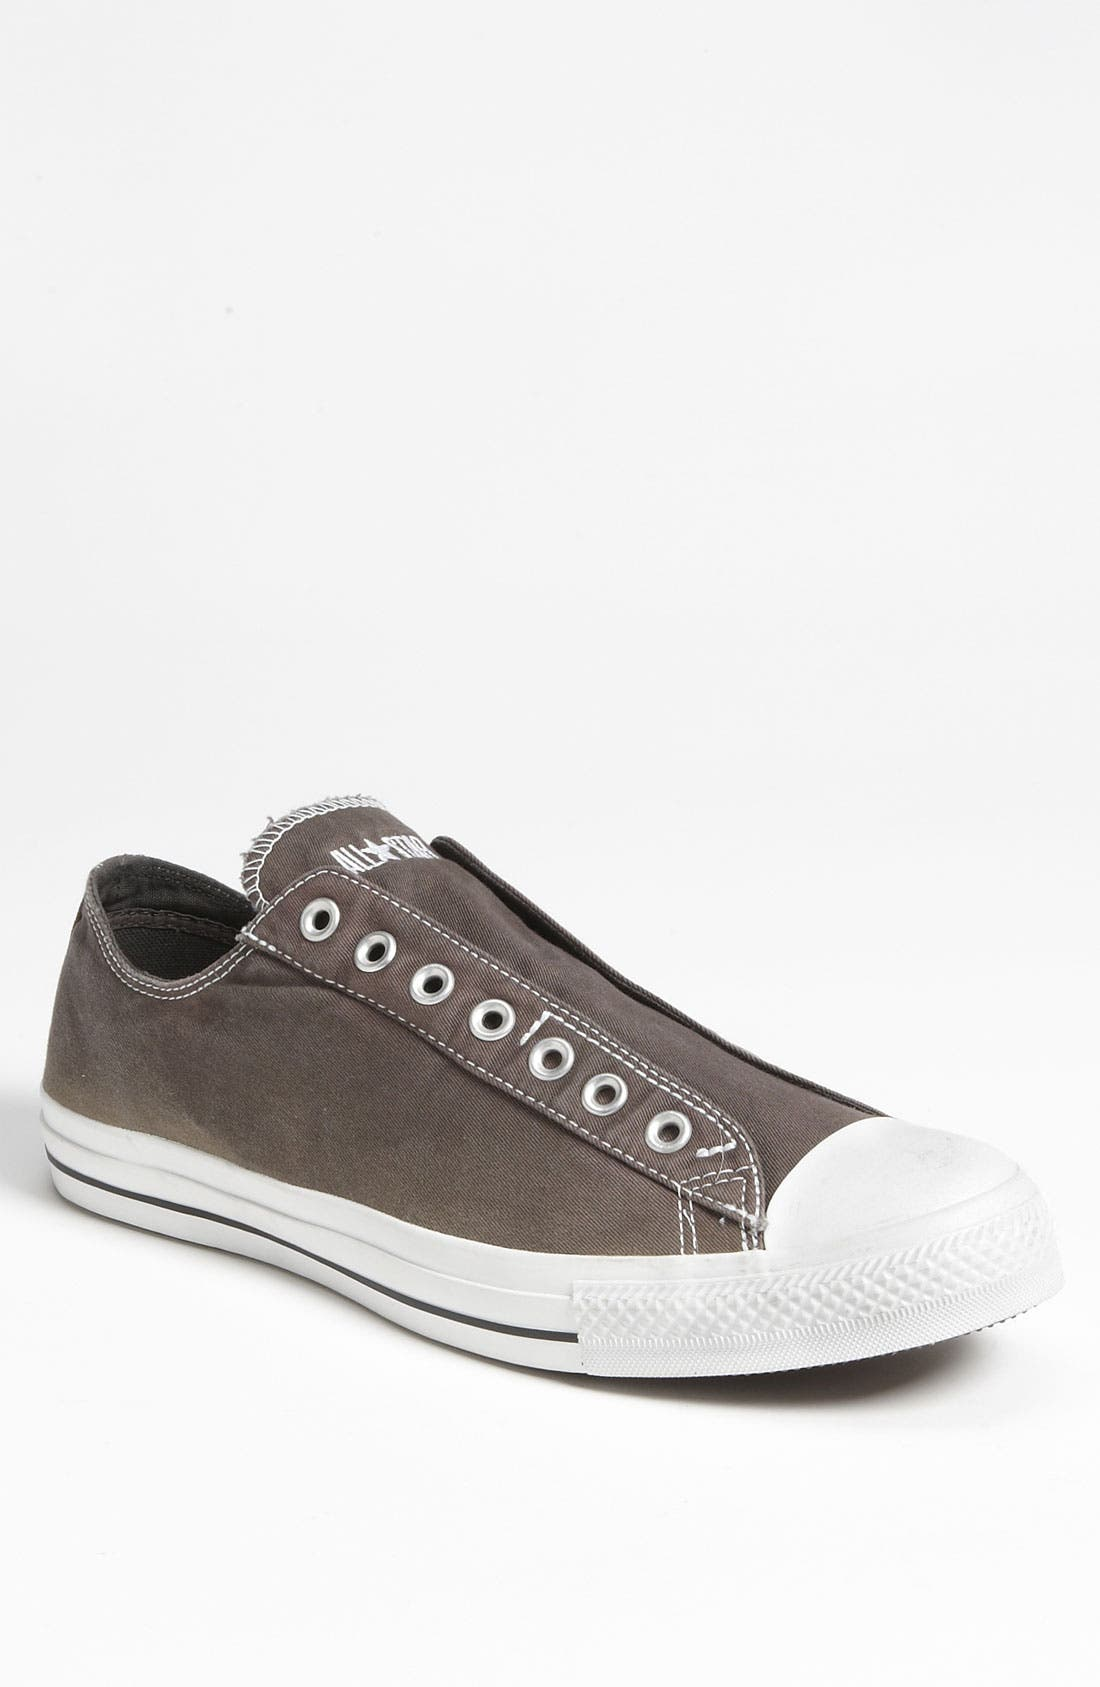 Alternate Image 1 Selected - Converse 'Chuck Taylor® - Frayless' Sneaker (Men)